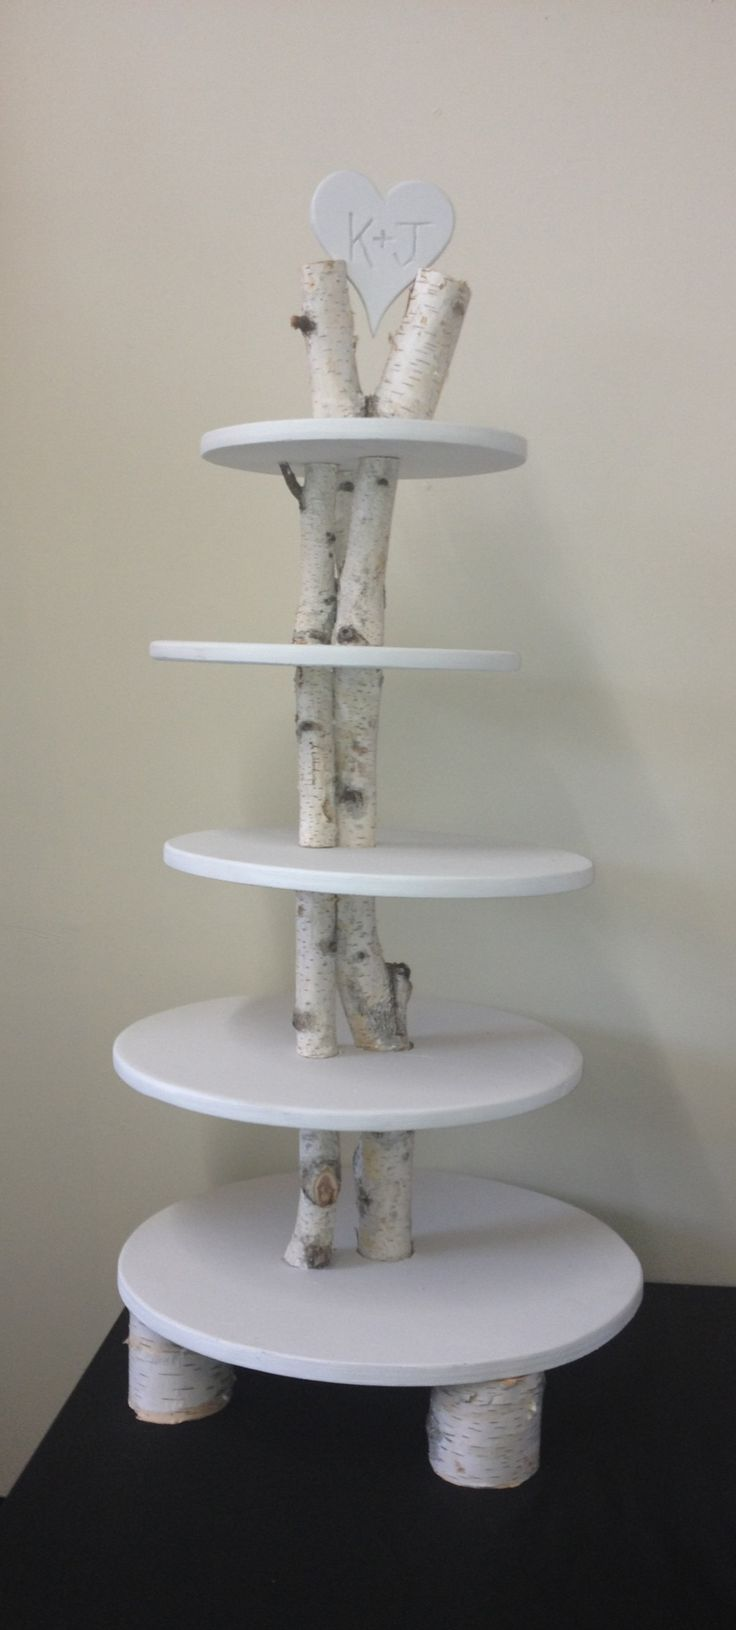 Birch Tree Wedding Tier for cupcakes... i know you said sinful bliss has a stand but this is awesome!!! I know you guys like trees right?